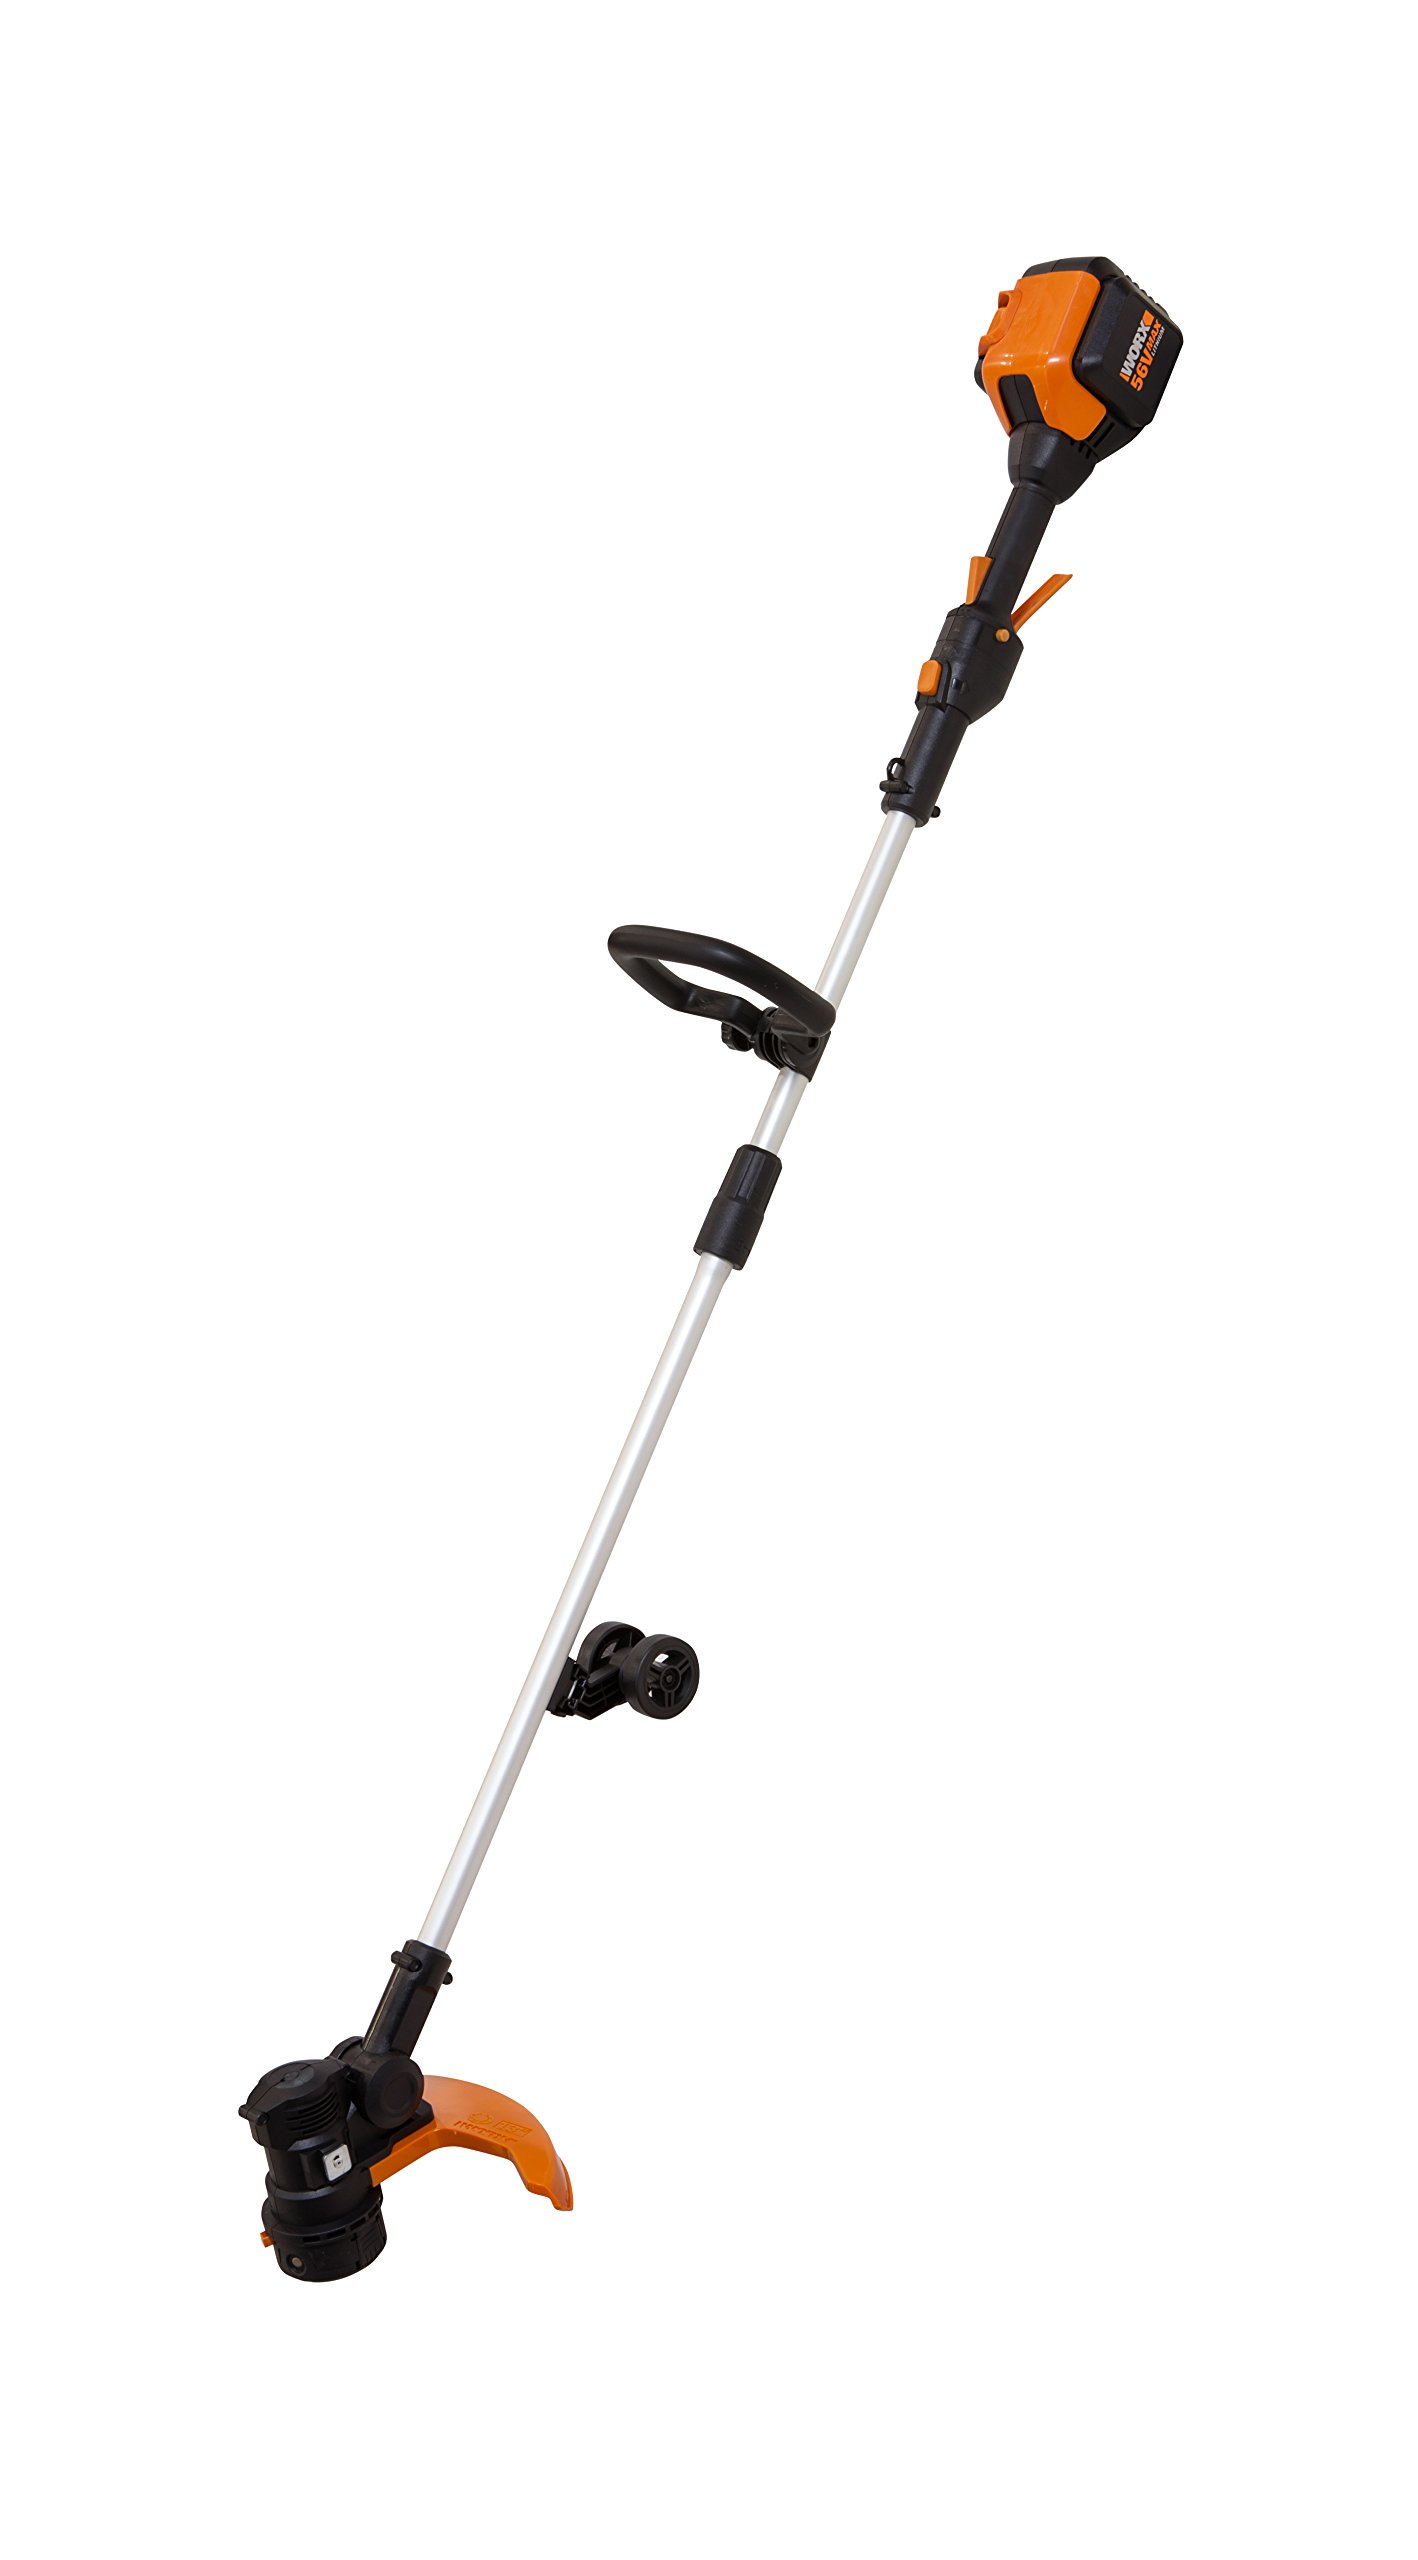 WORX 13'' Cordless Grass Trimmer with 56V Max Li-Ion, In-line Wheeled Edging and includes 90min. Charger - WG191 by Worx